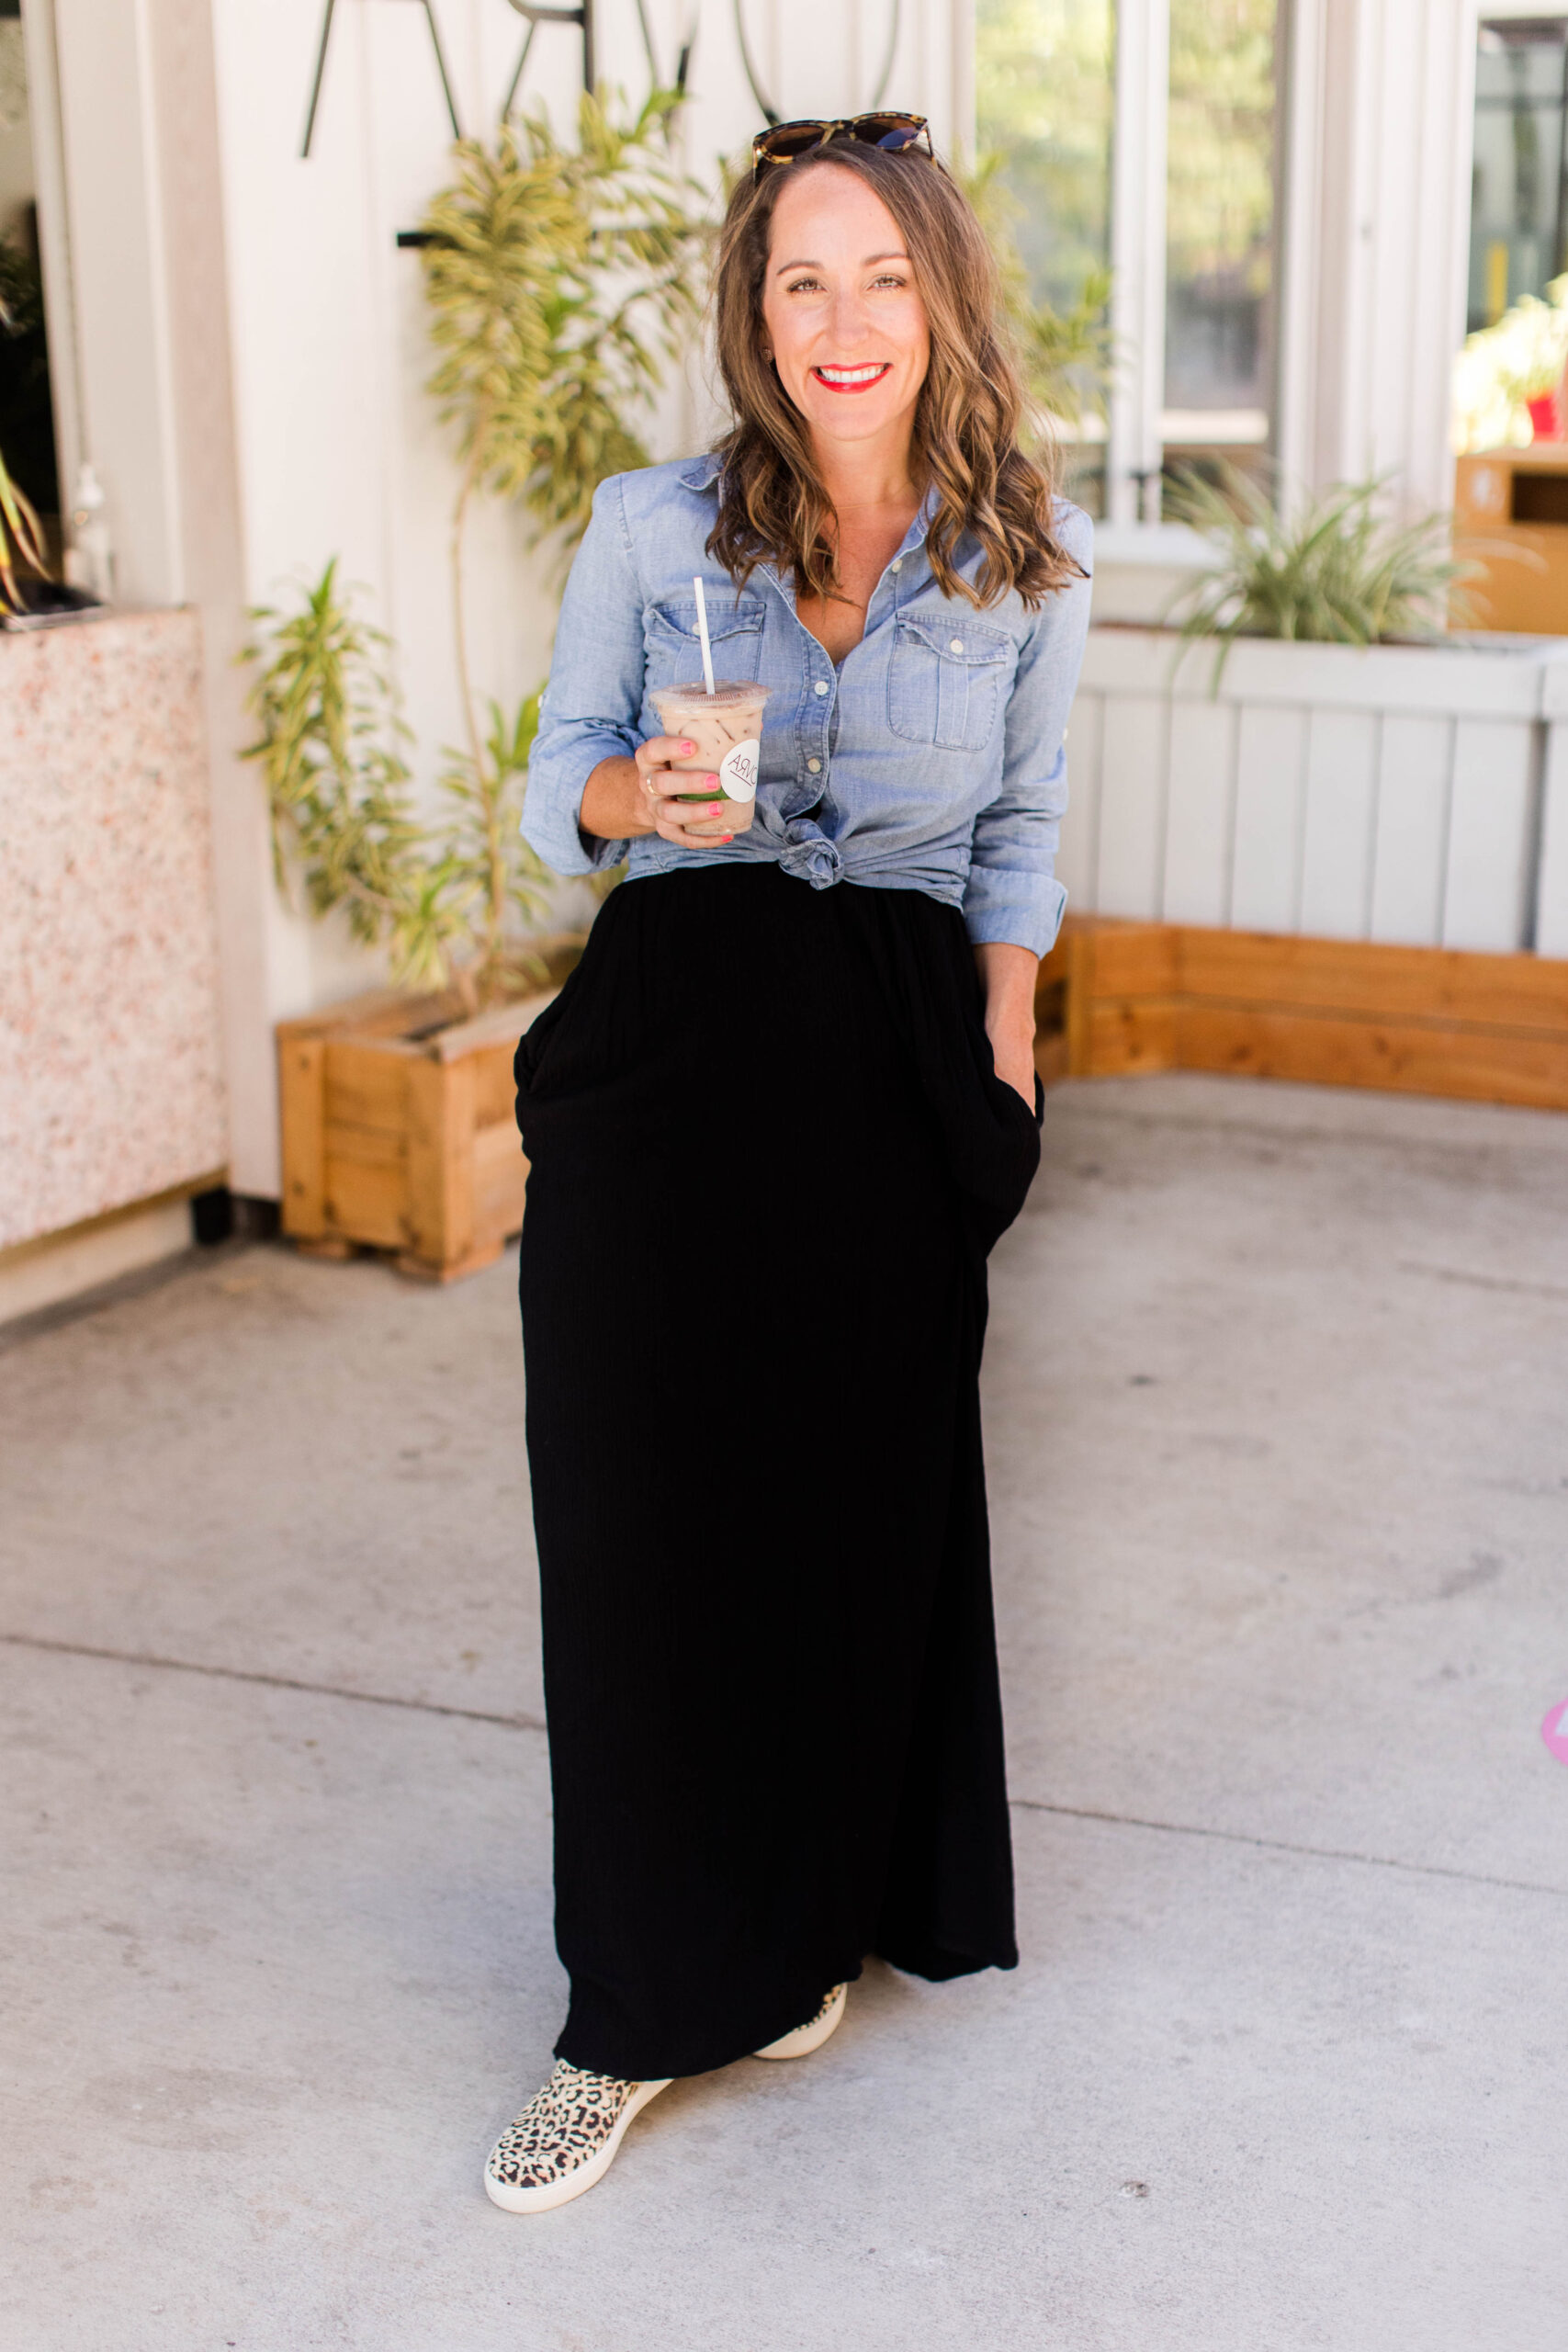 Rothy's Sneakers with a chambray top and maxi dress